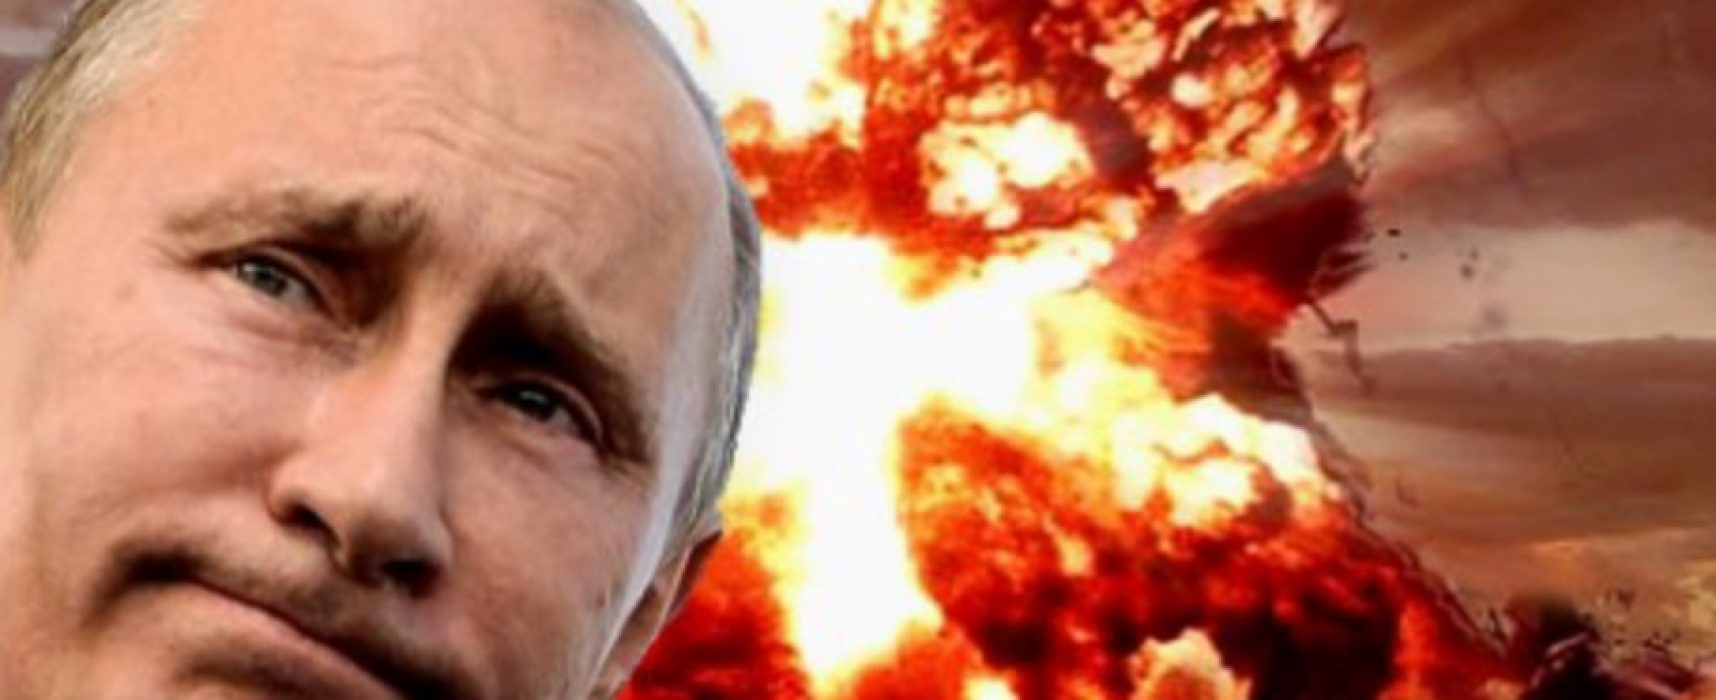 Kremlin Fakes: Why Mr. Putin Links ISIS to Ukraine?